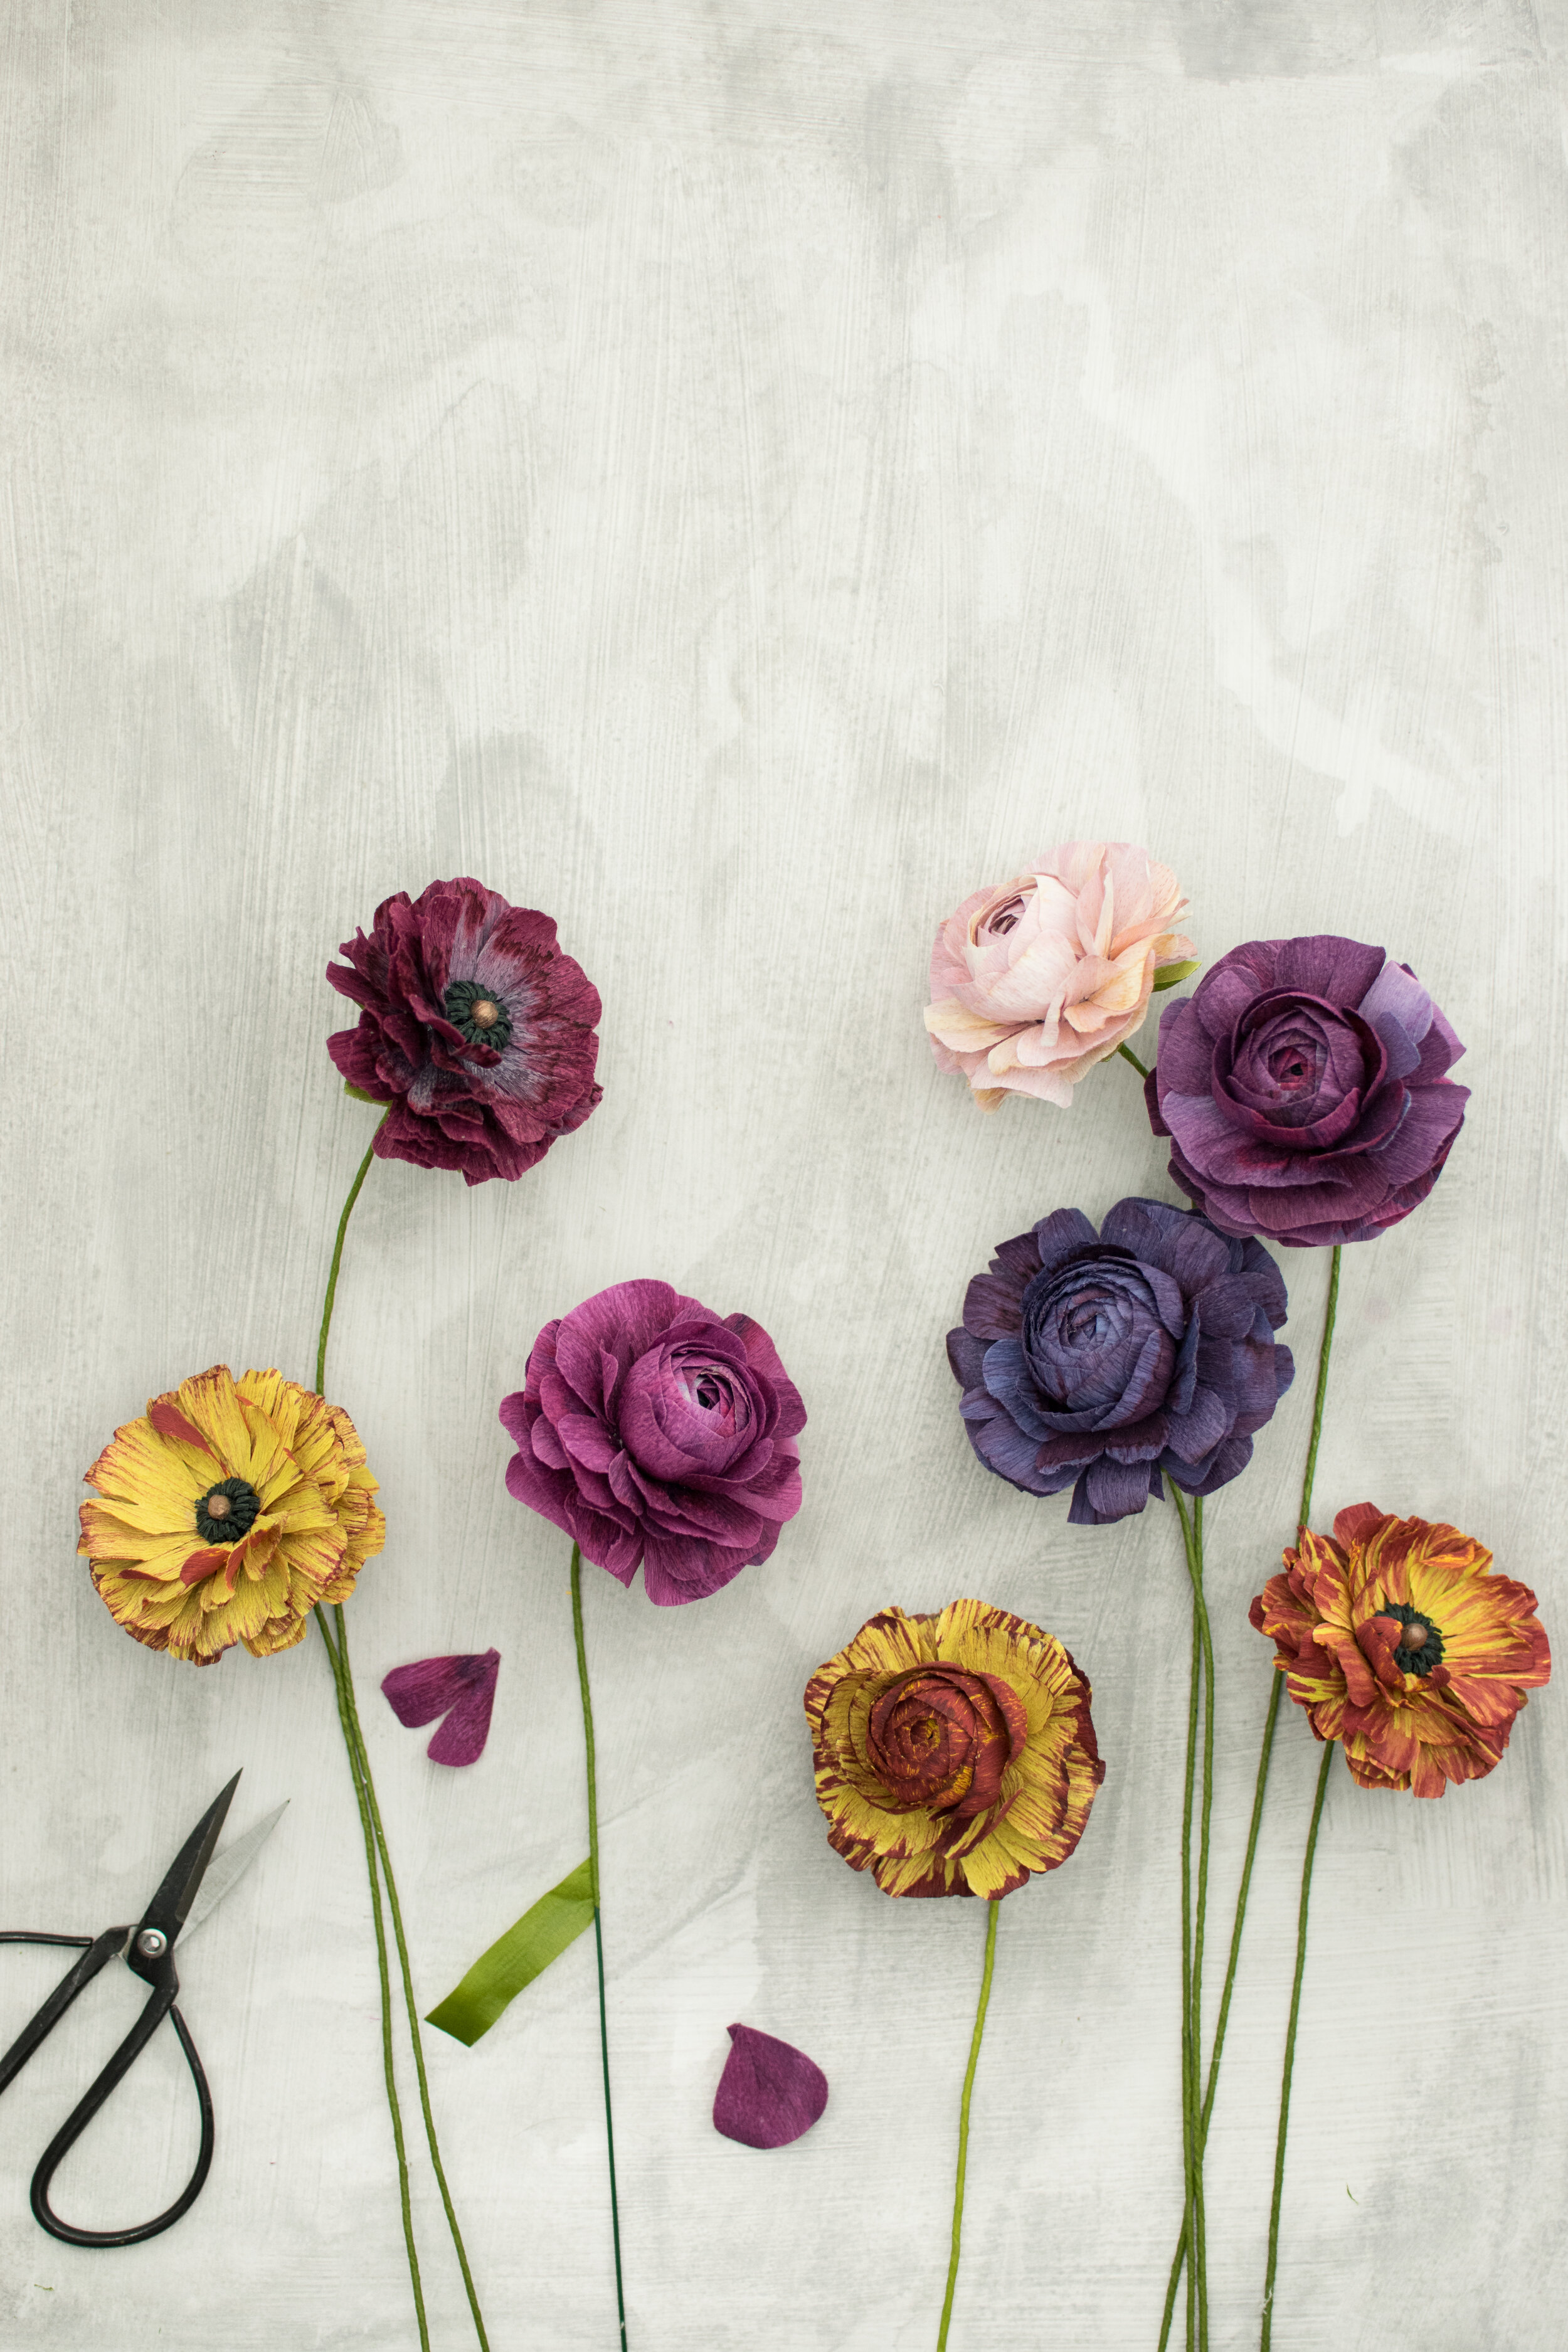 Closed Ranunculus Image 2 V2.jpg